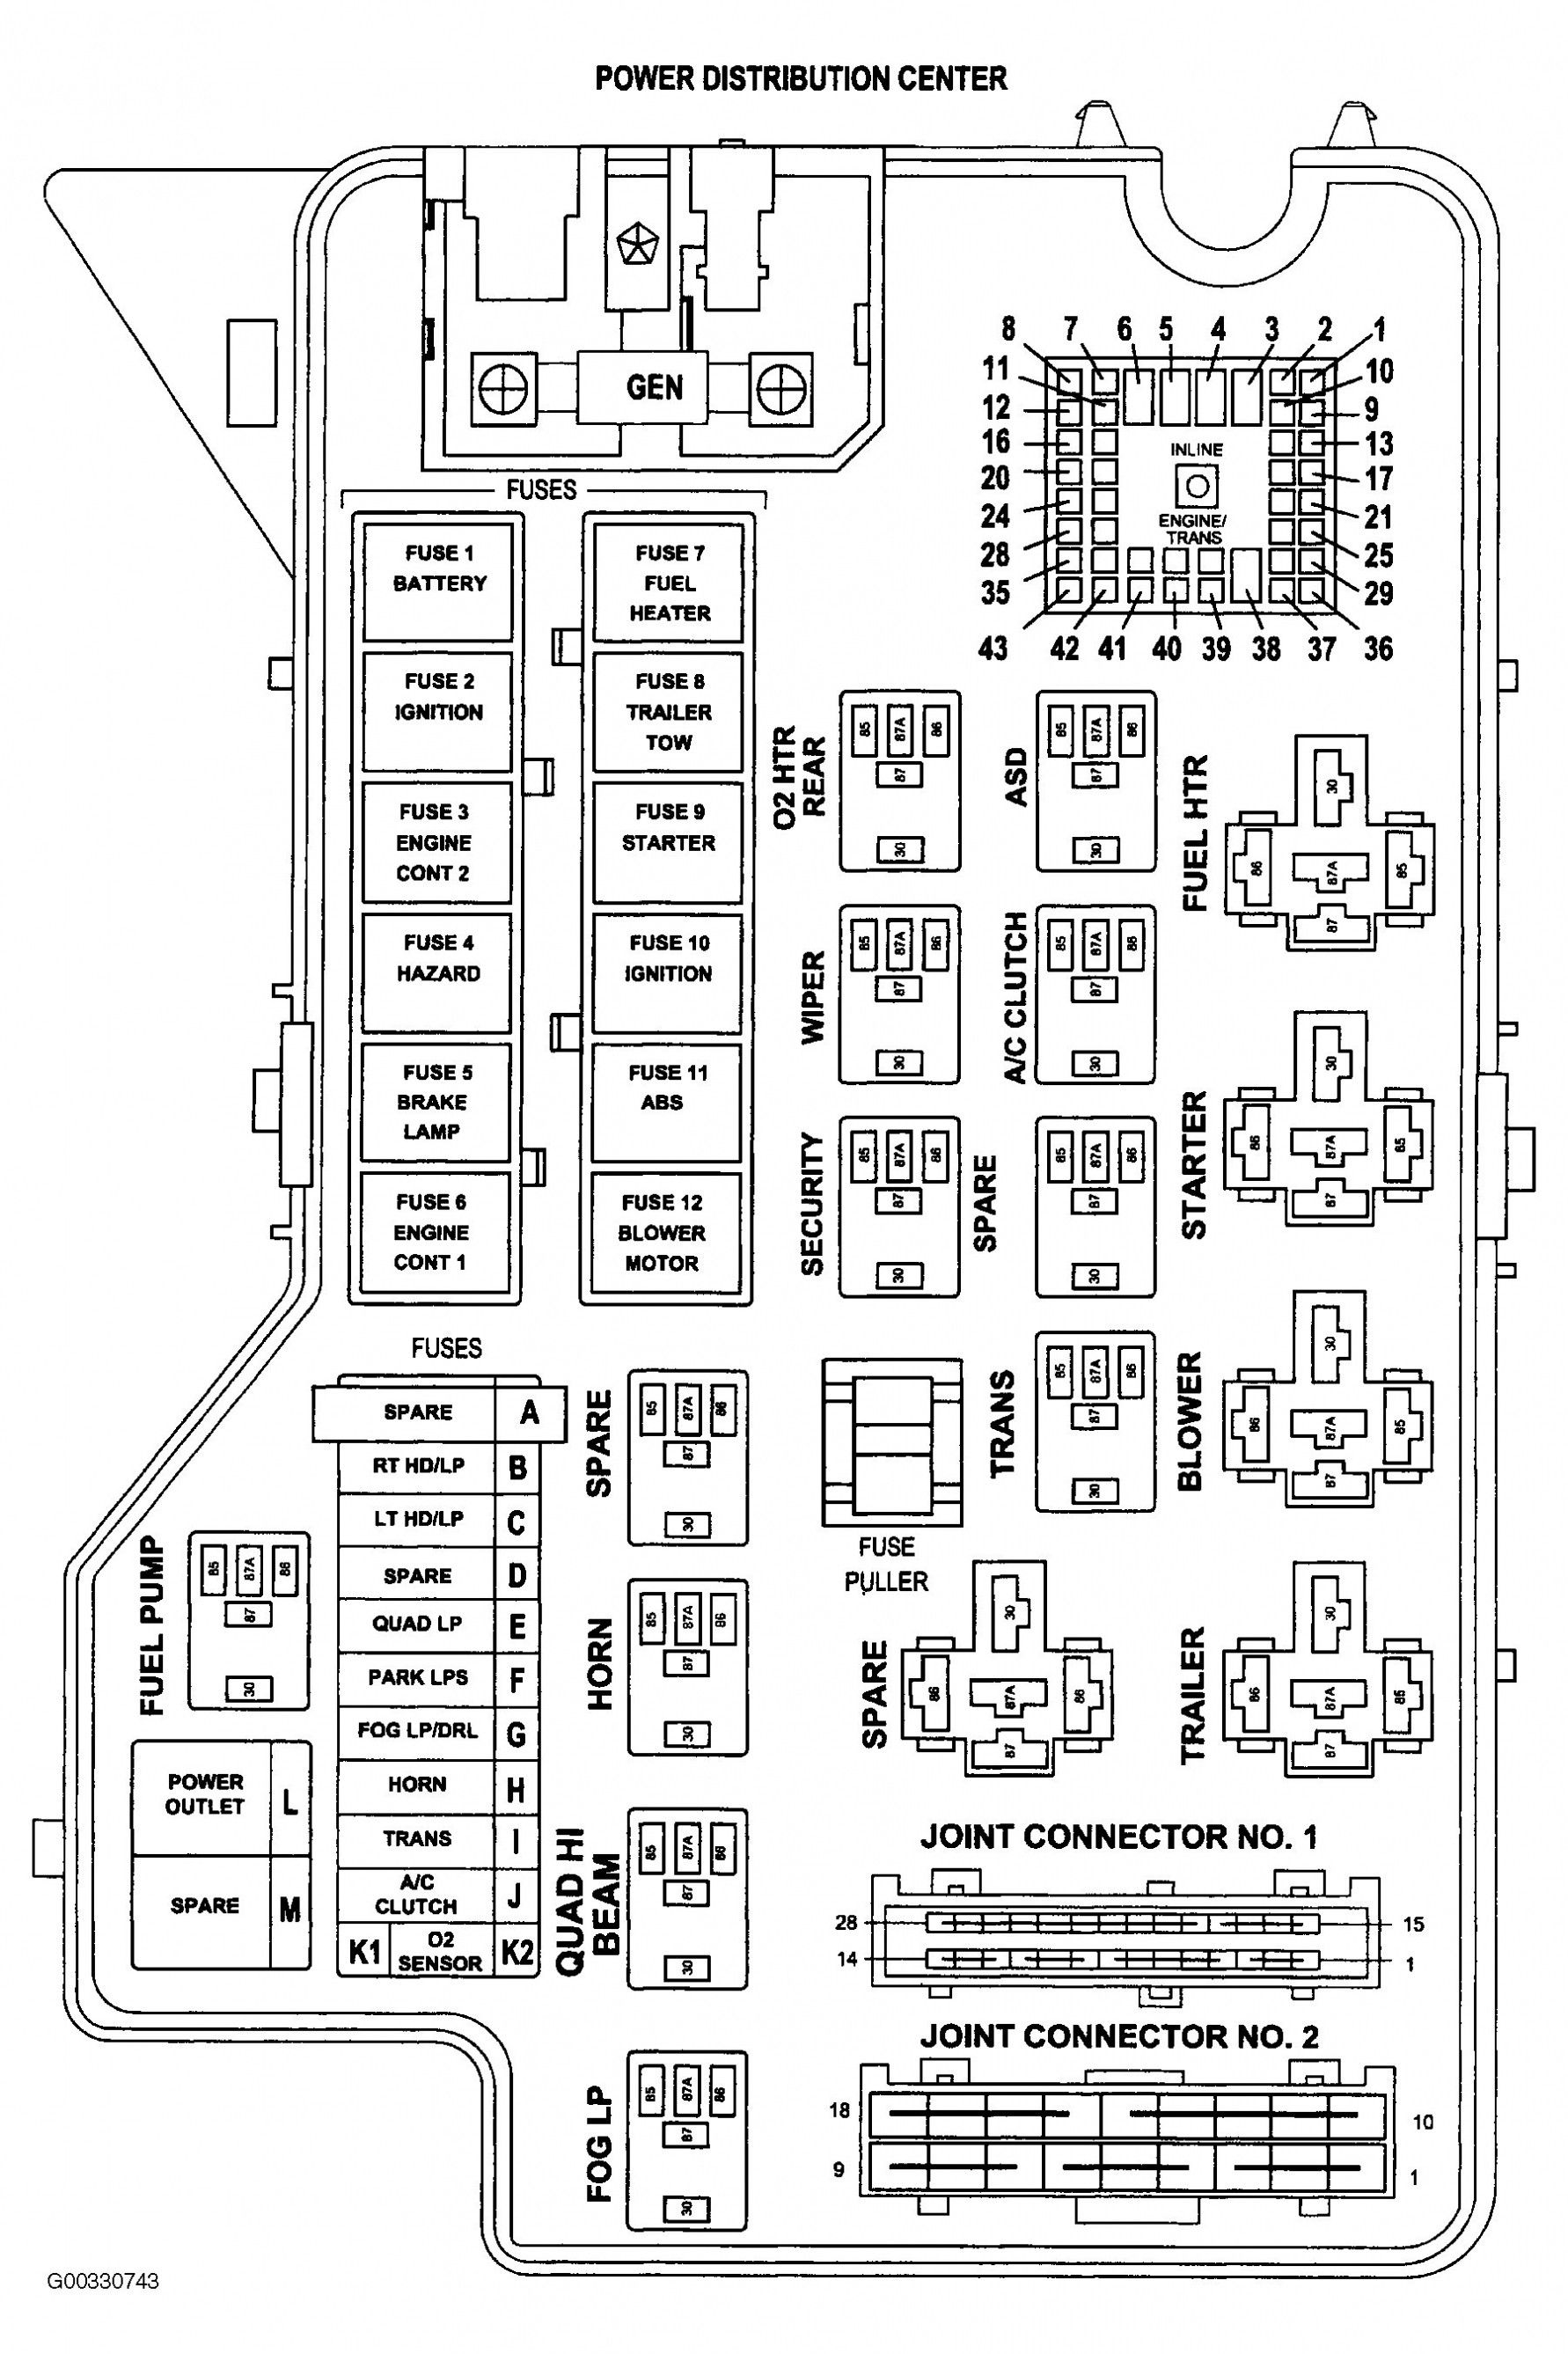 1996 ram 1500 wiring diagram 99 dodge ram fuse box wiring diagram data 1996 dodge ram 1500 speaker wiring diagram 99 dodge ram fuse box wiring diagram data